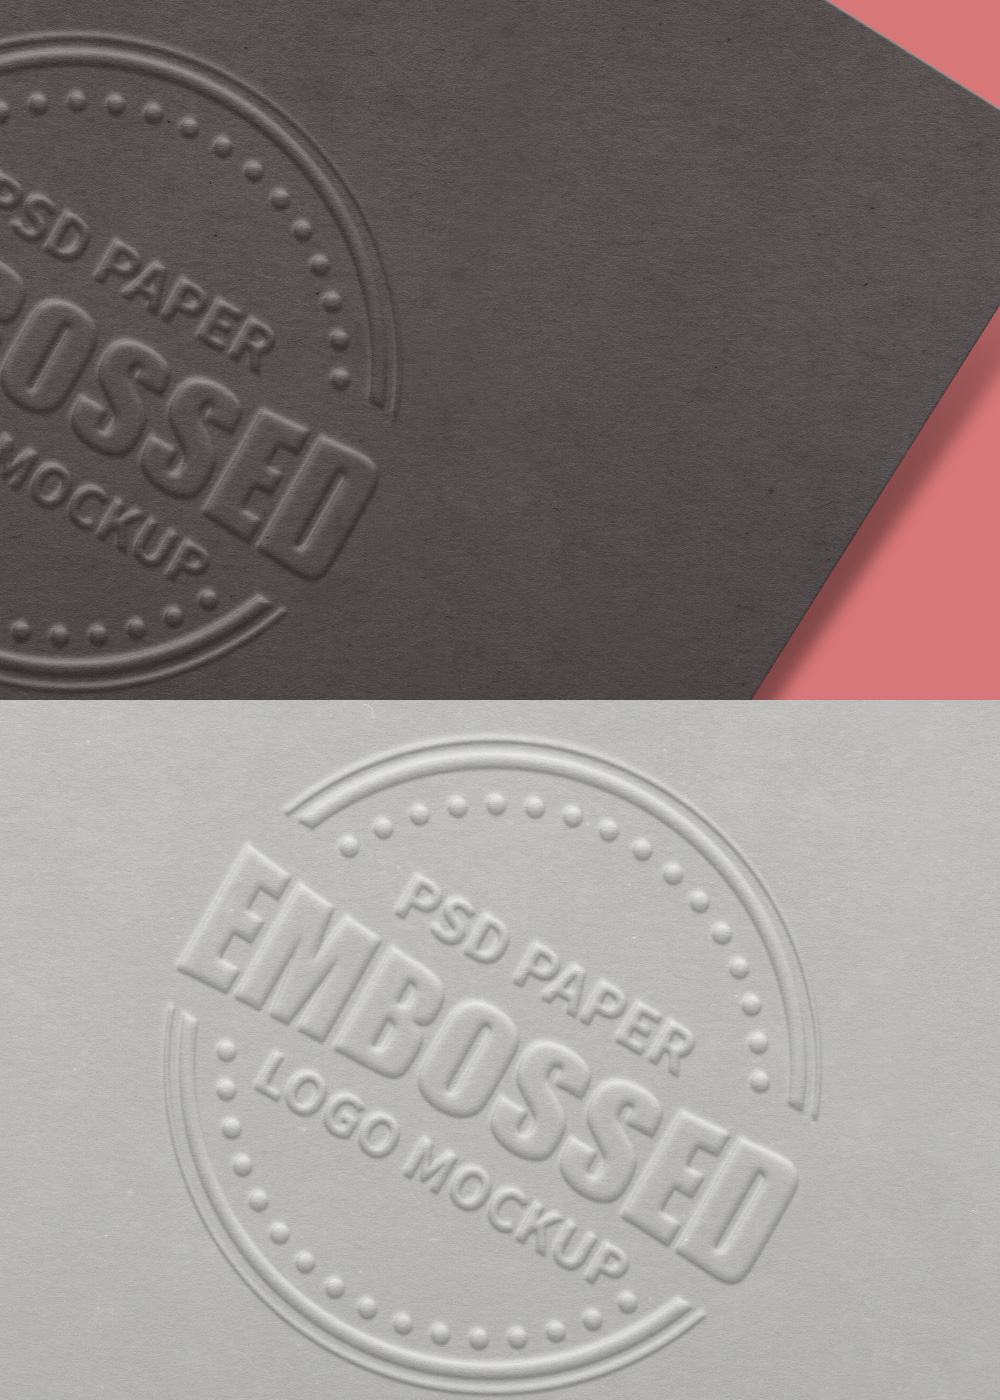 embossed-paper-logo-mockup-full-view